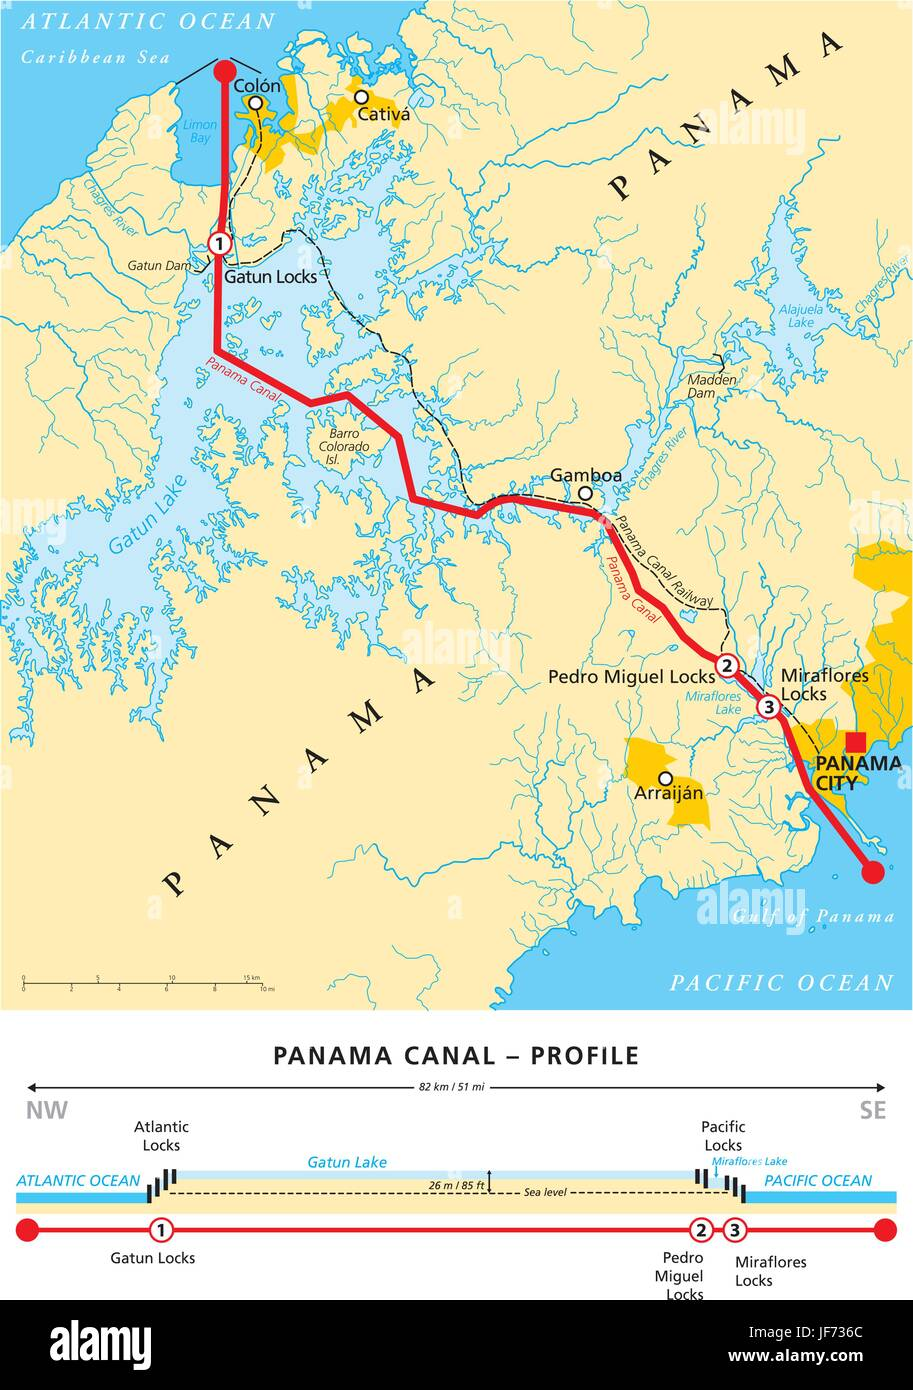 Panama Canal On World Map : panama, canal, world, Profile,, Channel,, Panama,, Canal,, Shipping,, Atlas,, Stock, Vector, Image, Alamy